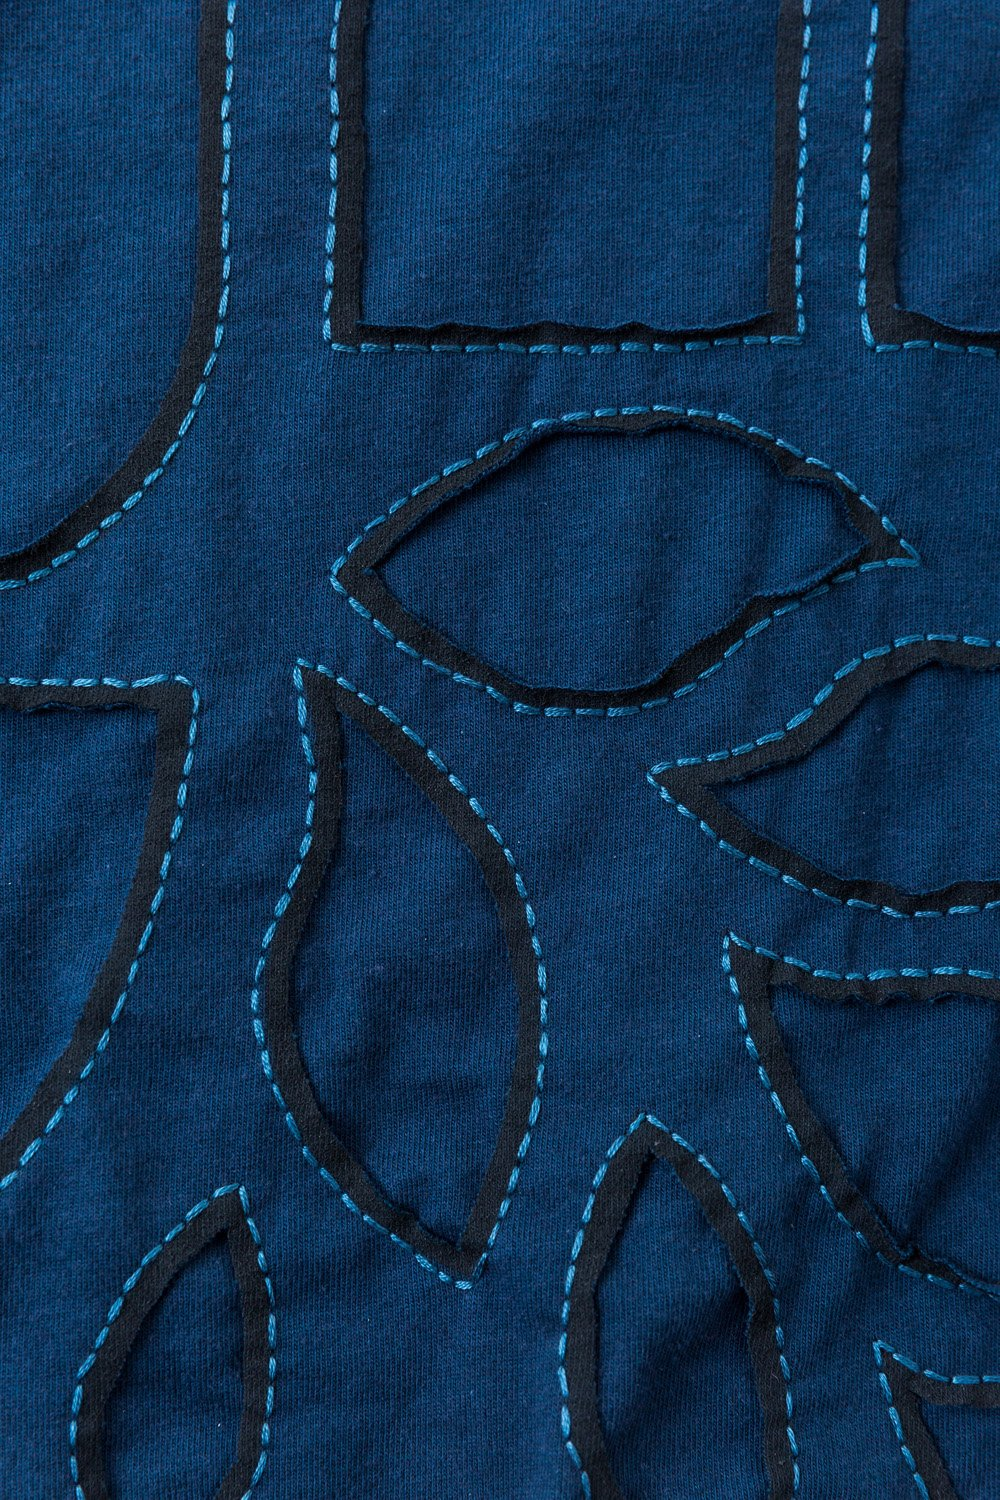 alabama chanin organic cotton in blue stenciled with embroidery floss